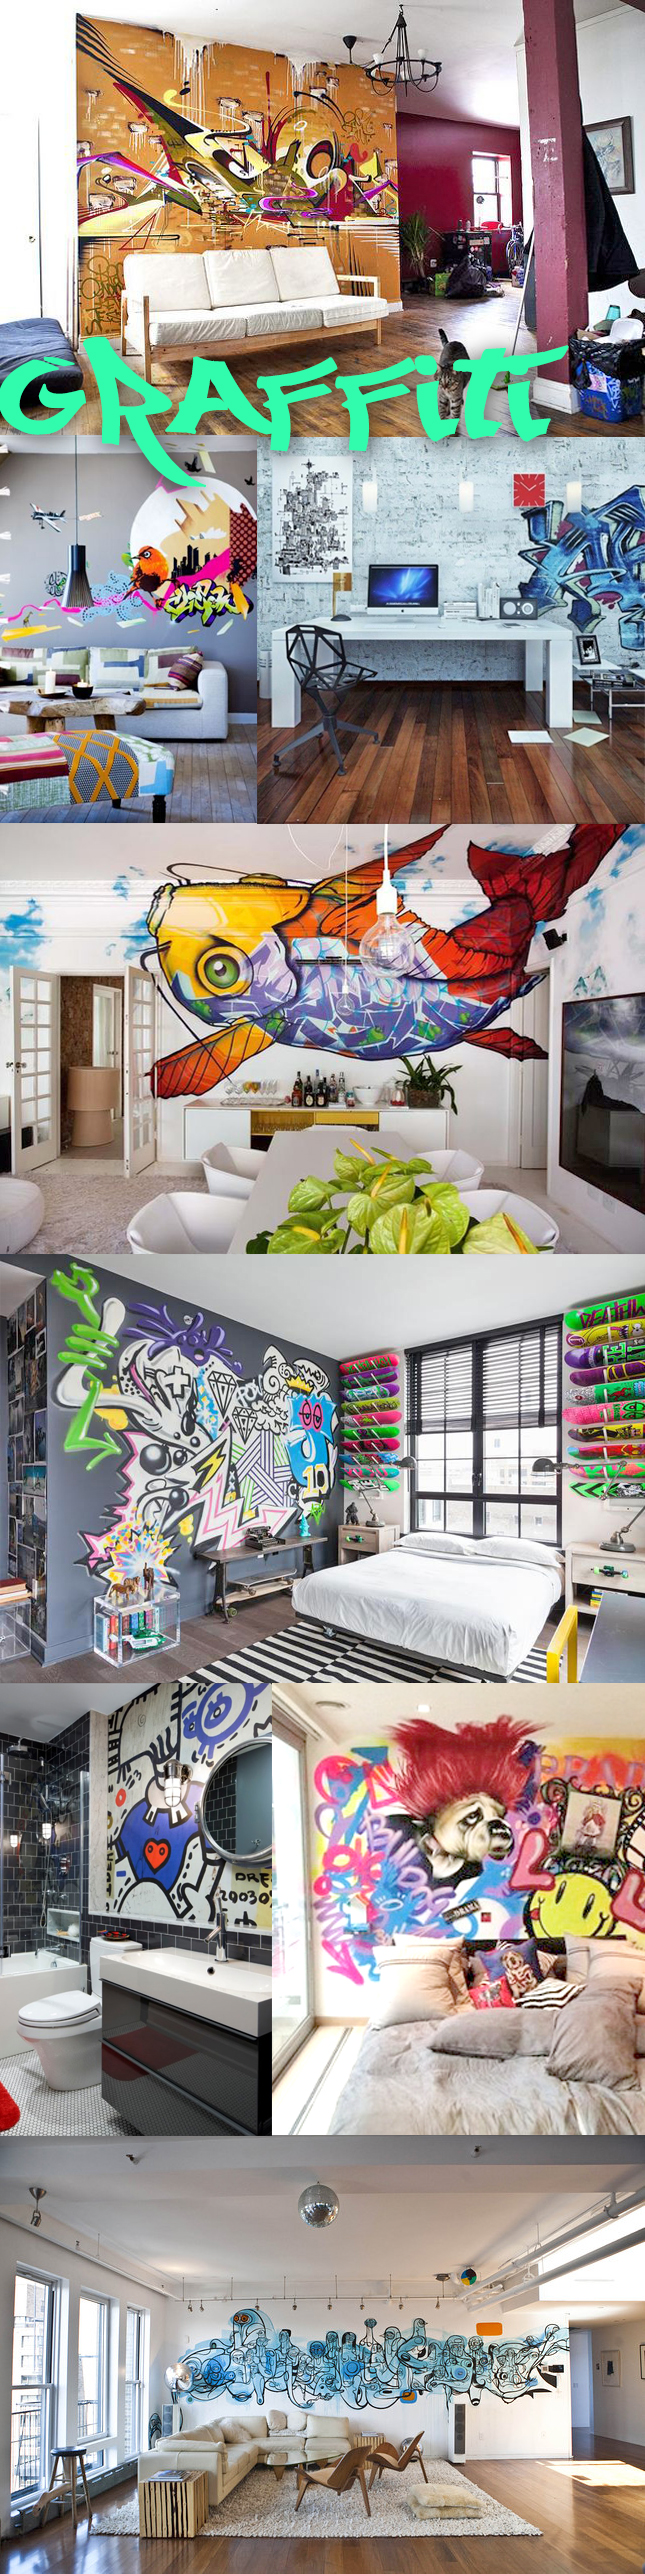 decoradornet-inspiracao-graffiti